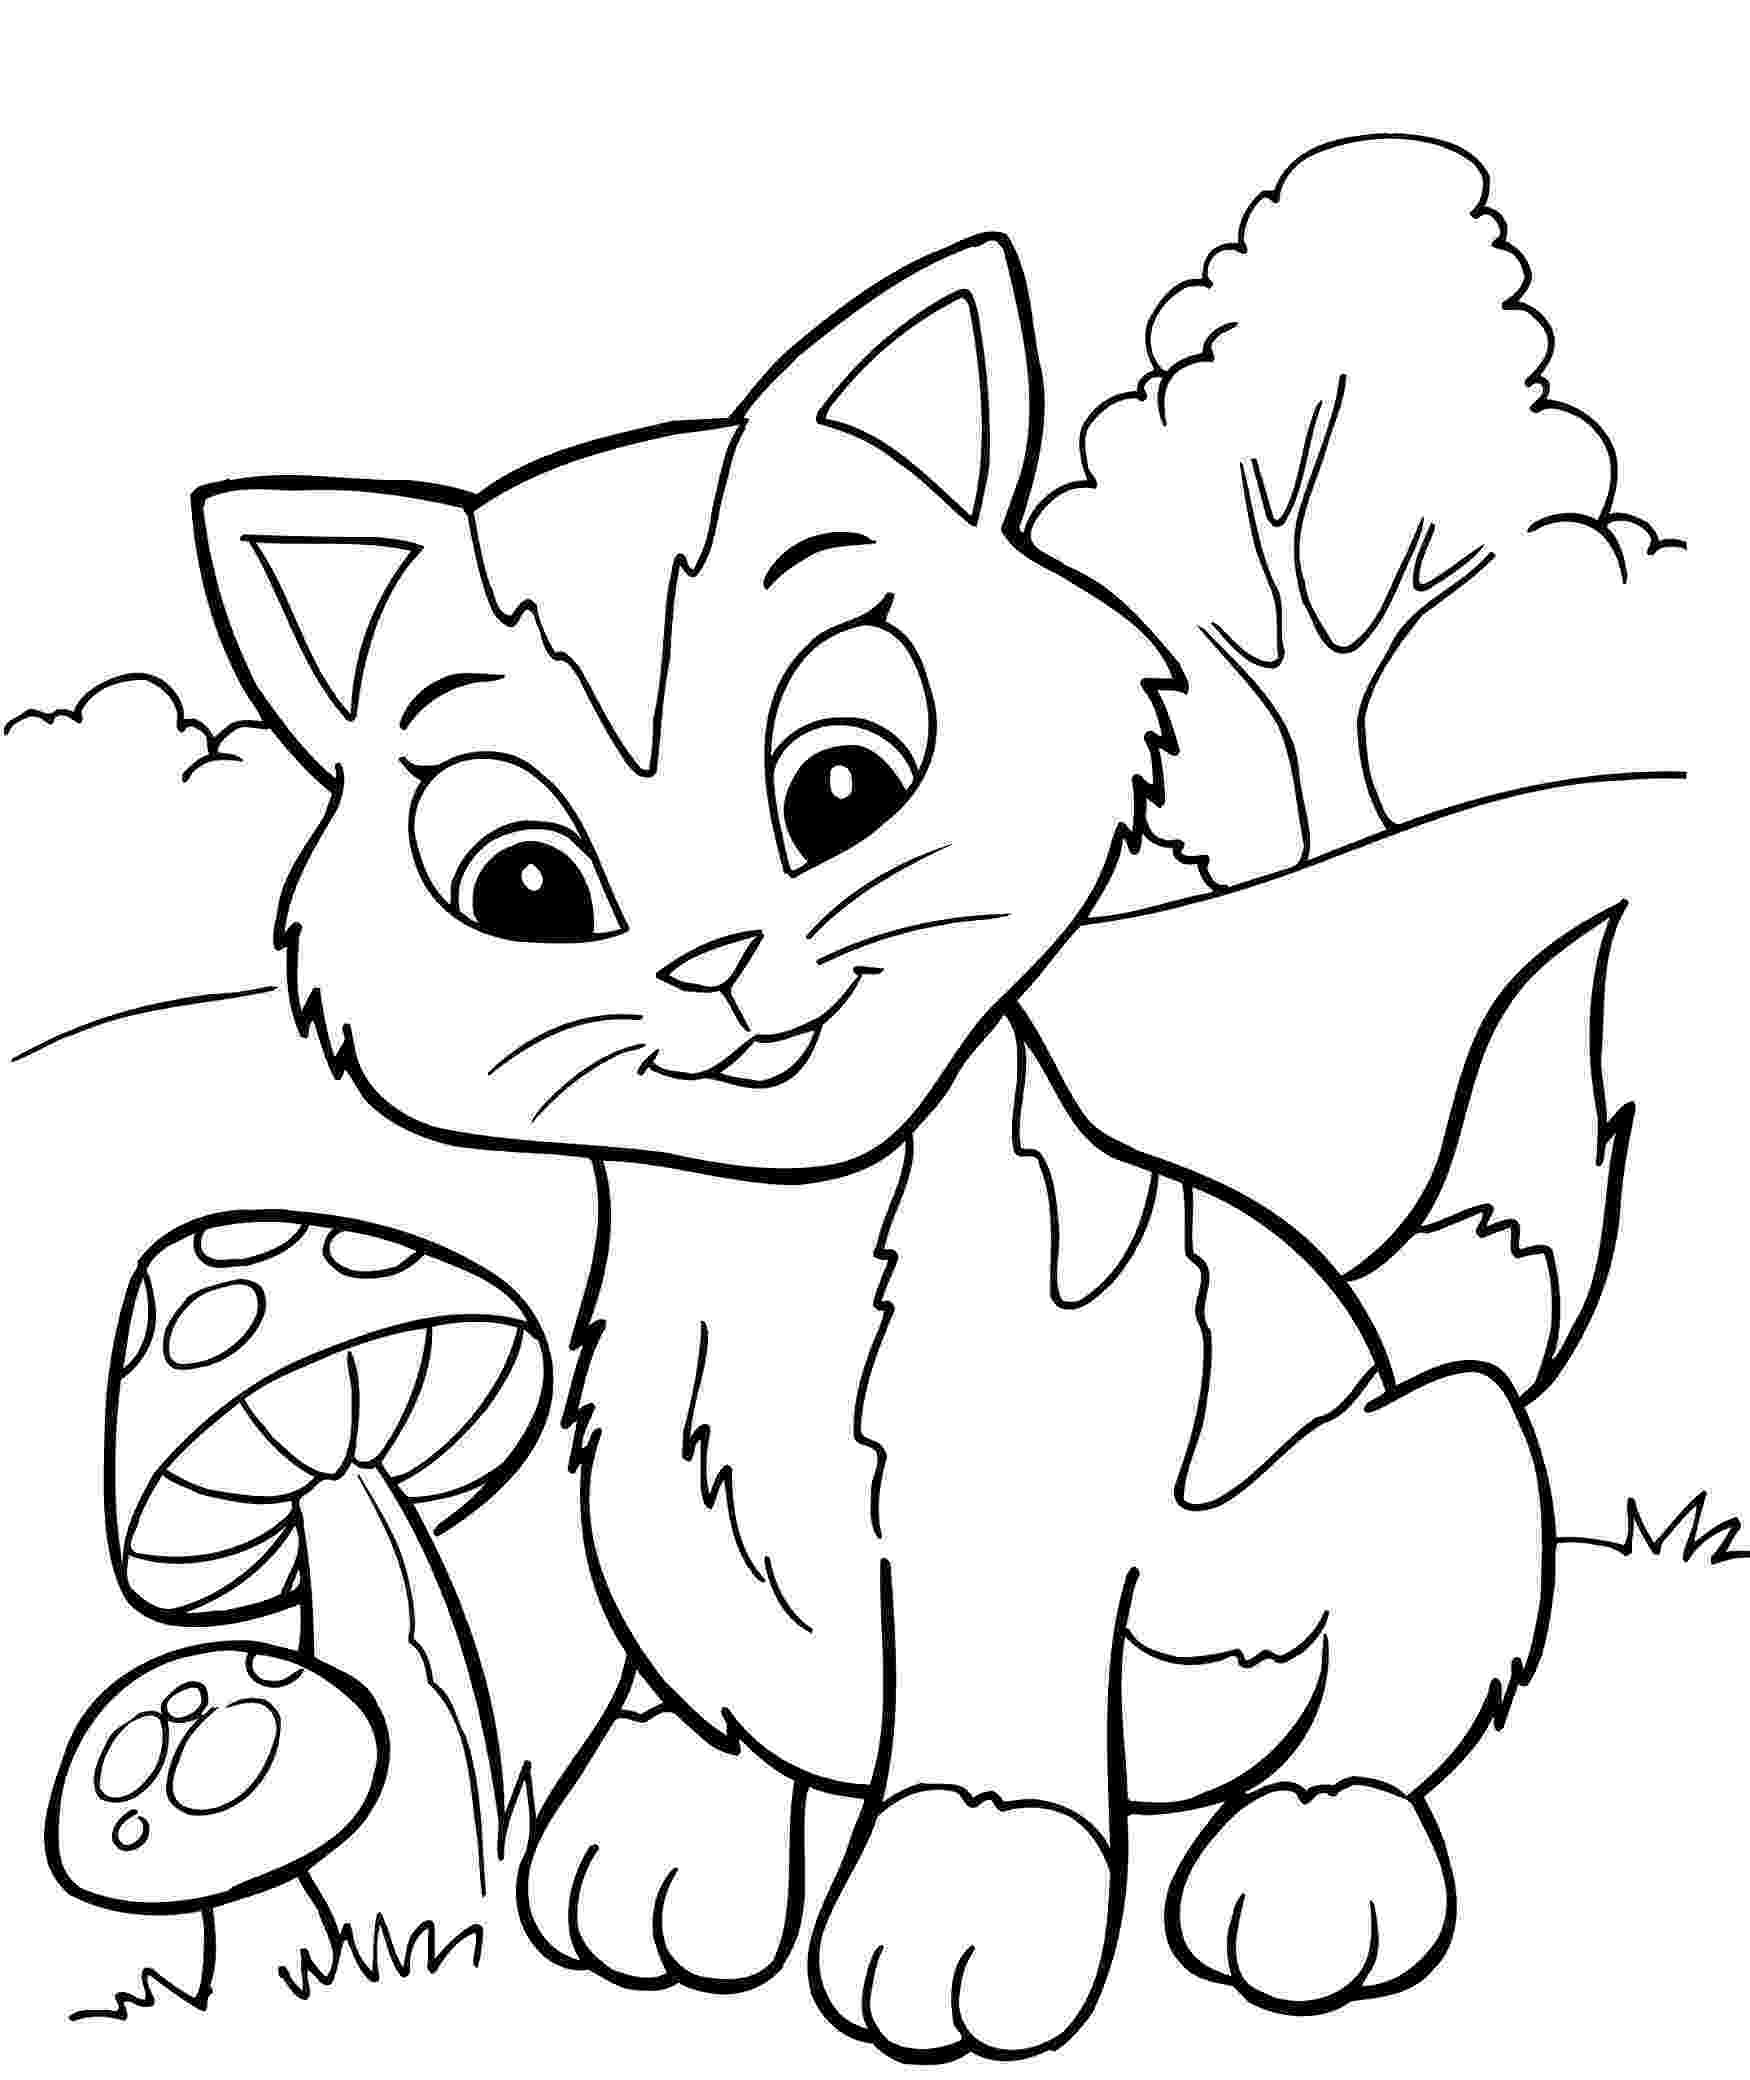 cat pictures for kids to color kitty cat coloring pages coloring pages for kids to kids for color pictures cat